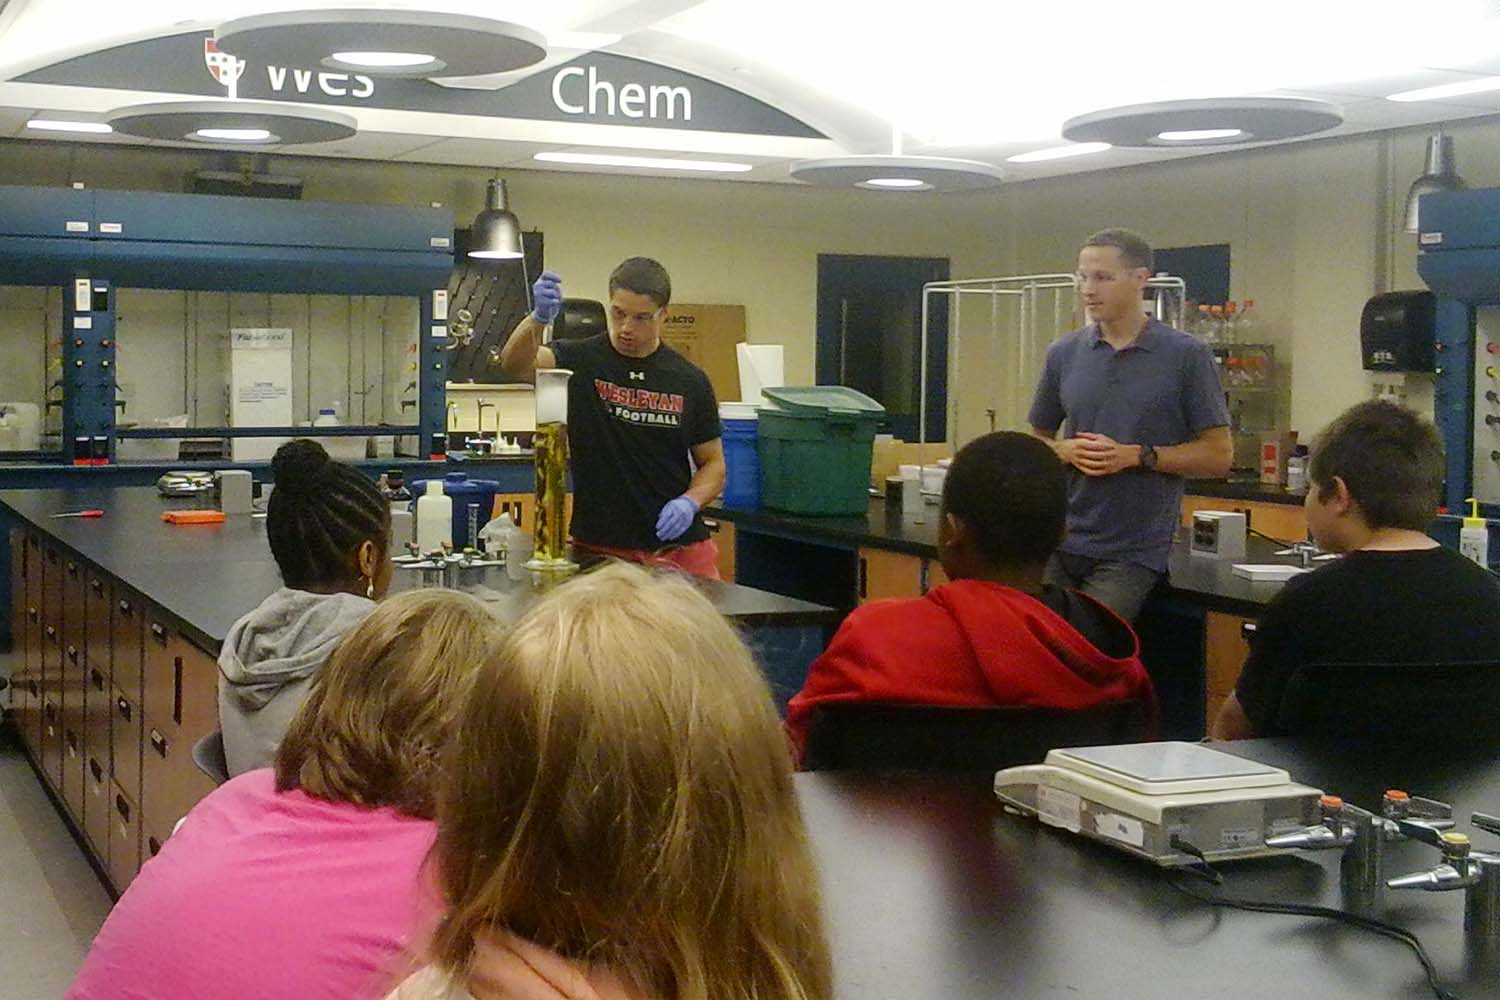 Brian Northrop, assistant professor of chemistry, and Snow School students watch chemistry in action during their visit to Wesleyan. This annual program allows local fifth graders to see how science can be exciting as well as educational.